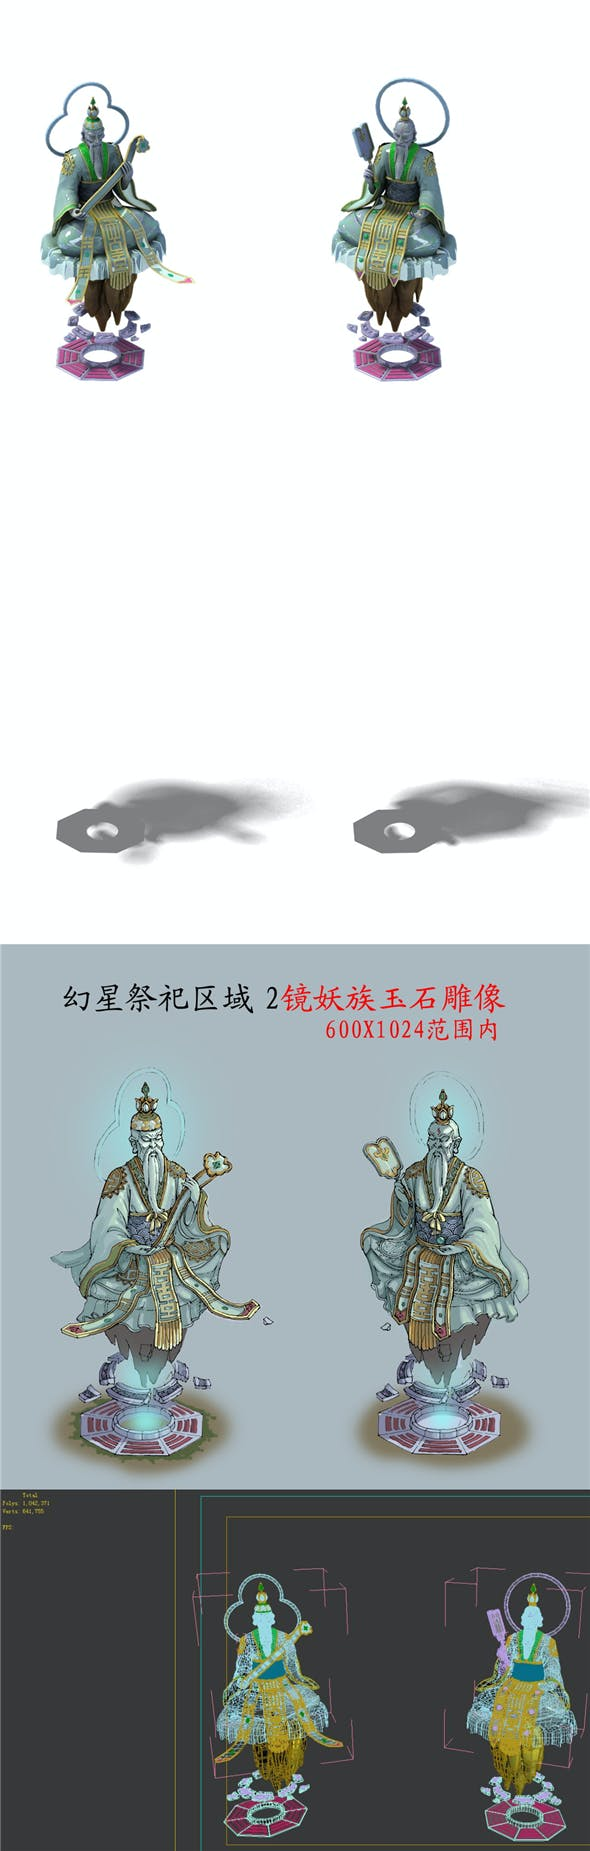 Game model - mirror Yao Yao jade statue - 3DOcean Item for Sale